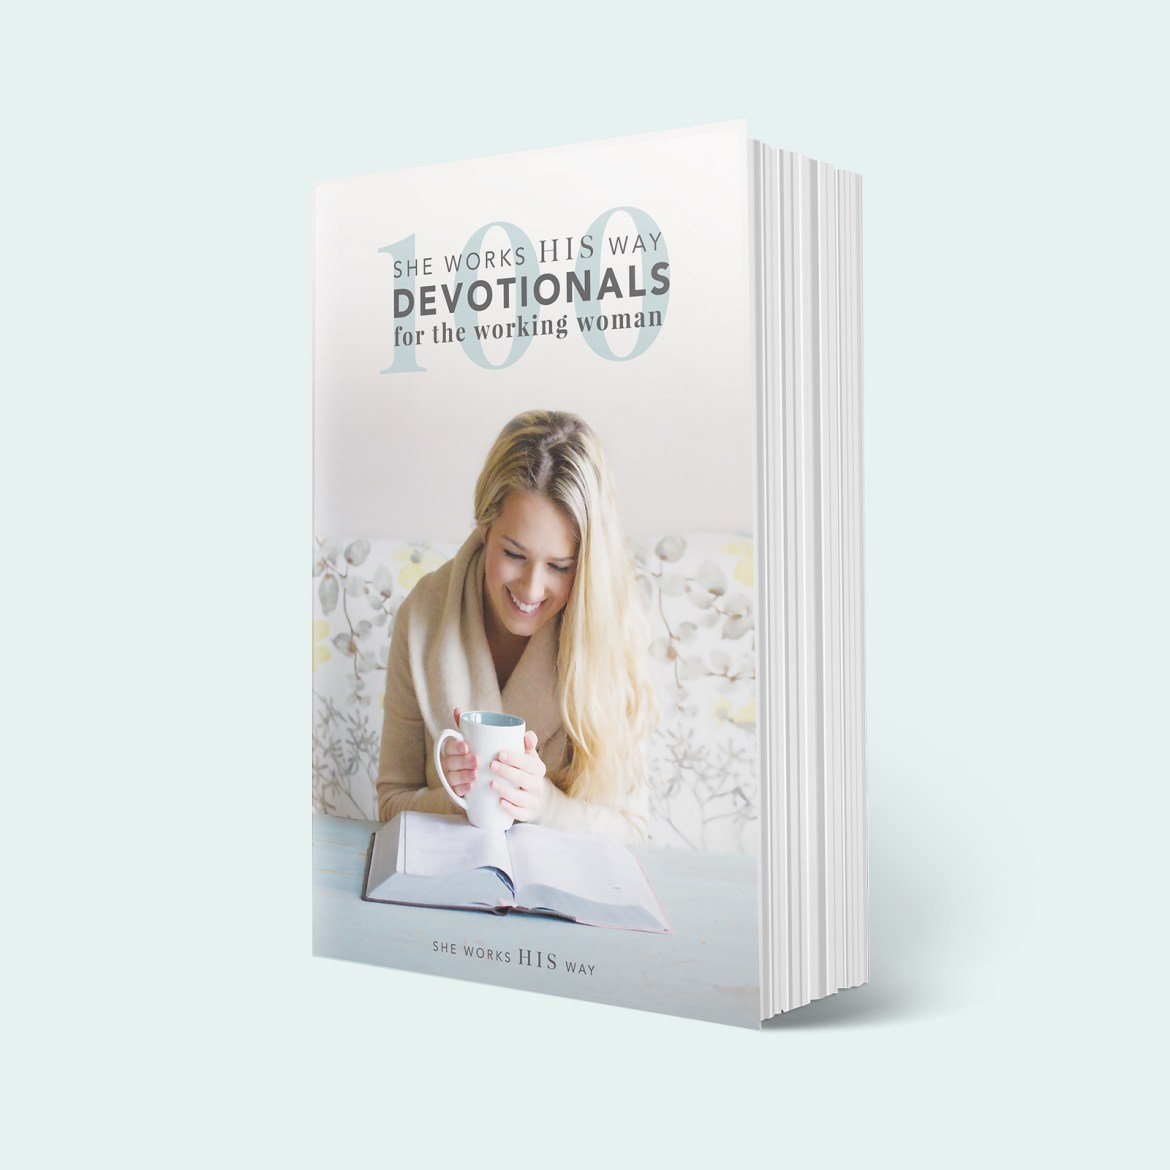 100 she works HIS way Devotionals for the Working Woman